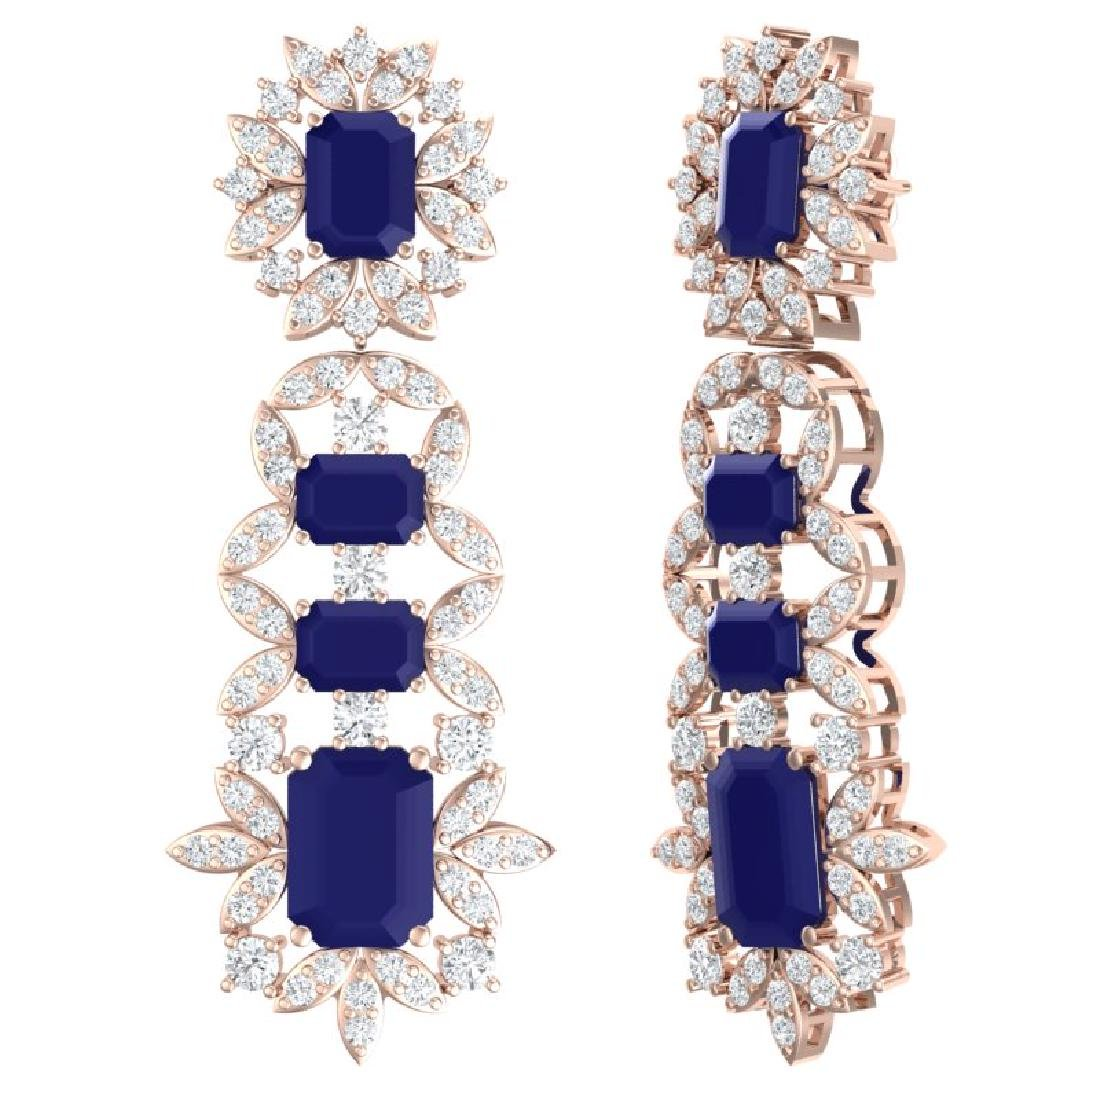 30.25 CTW Royalty Sapphire & VS Diamond Earrings 18K - 3